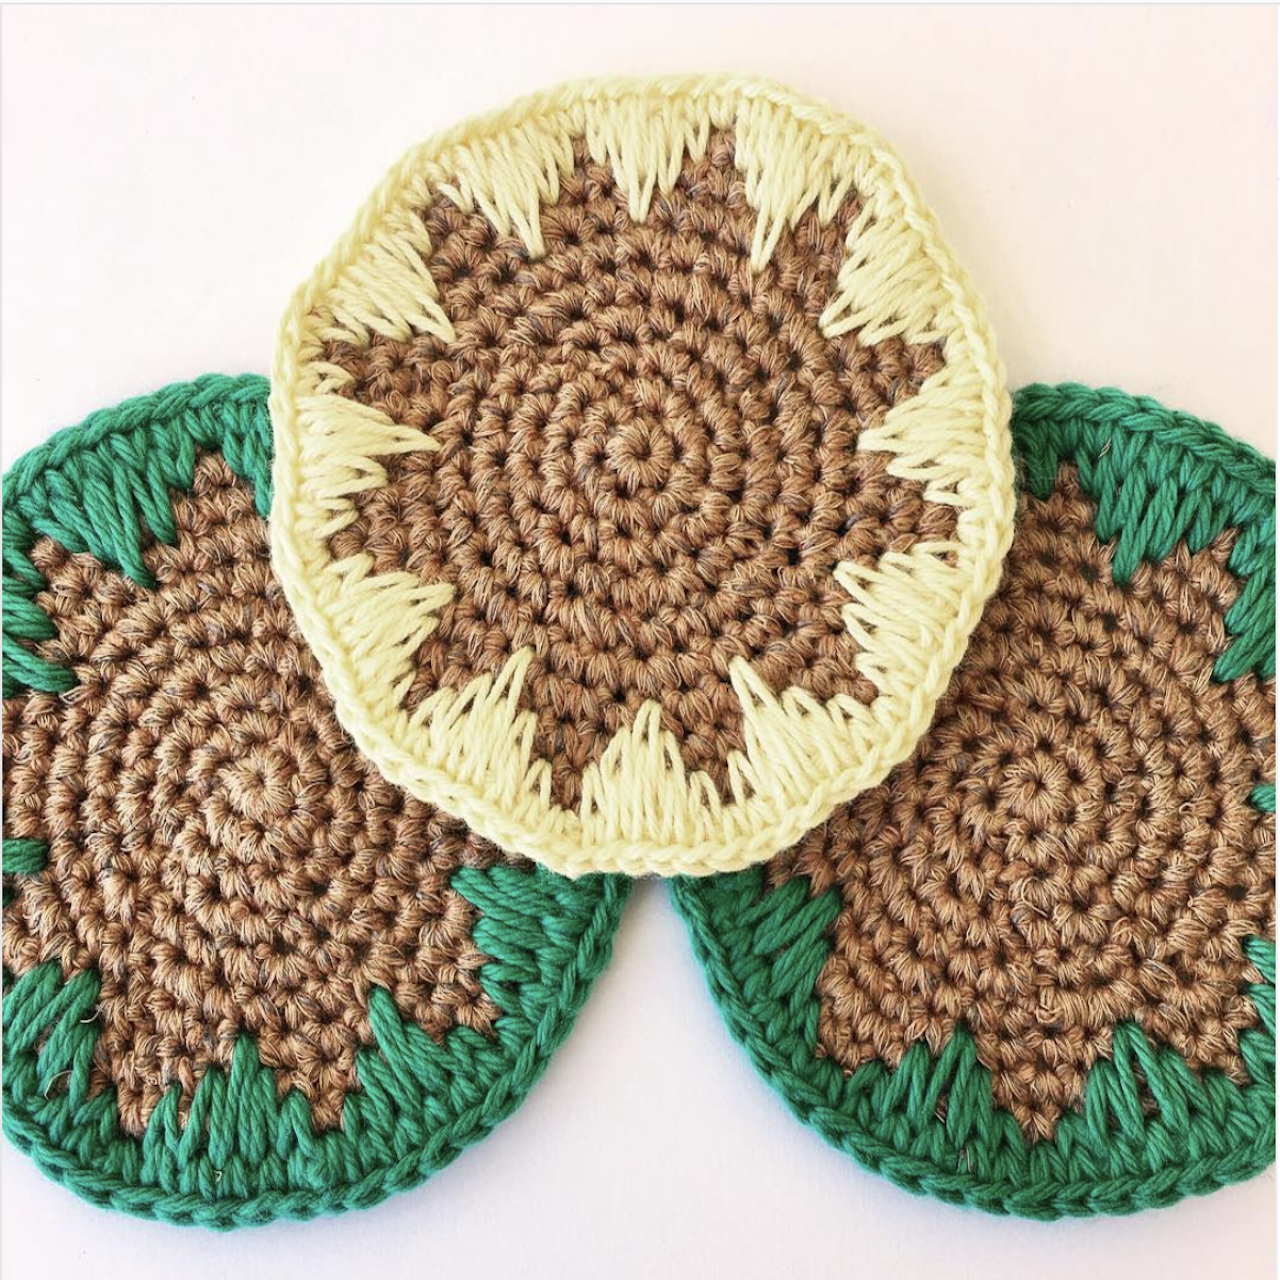 Crocheted Coaster Pattern